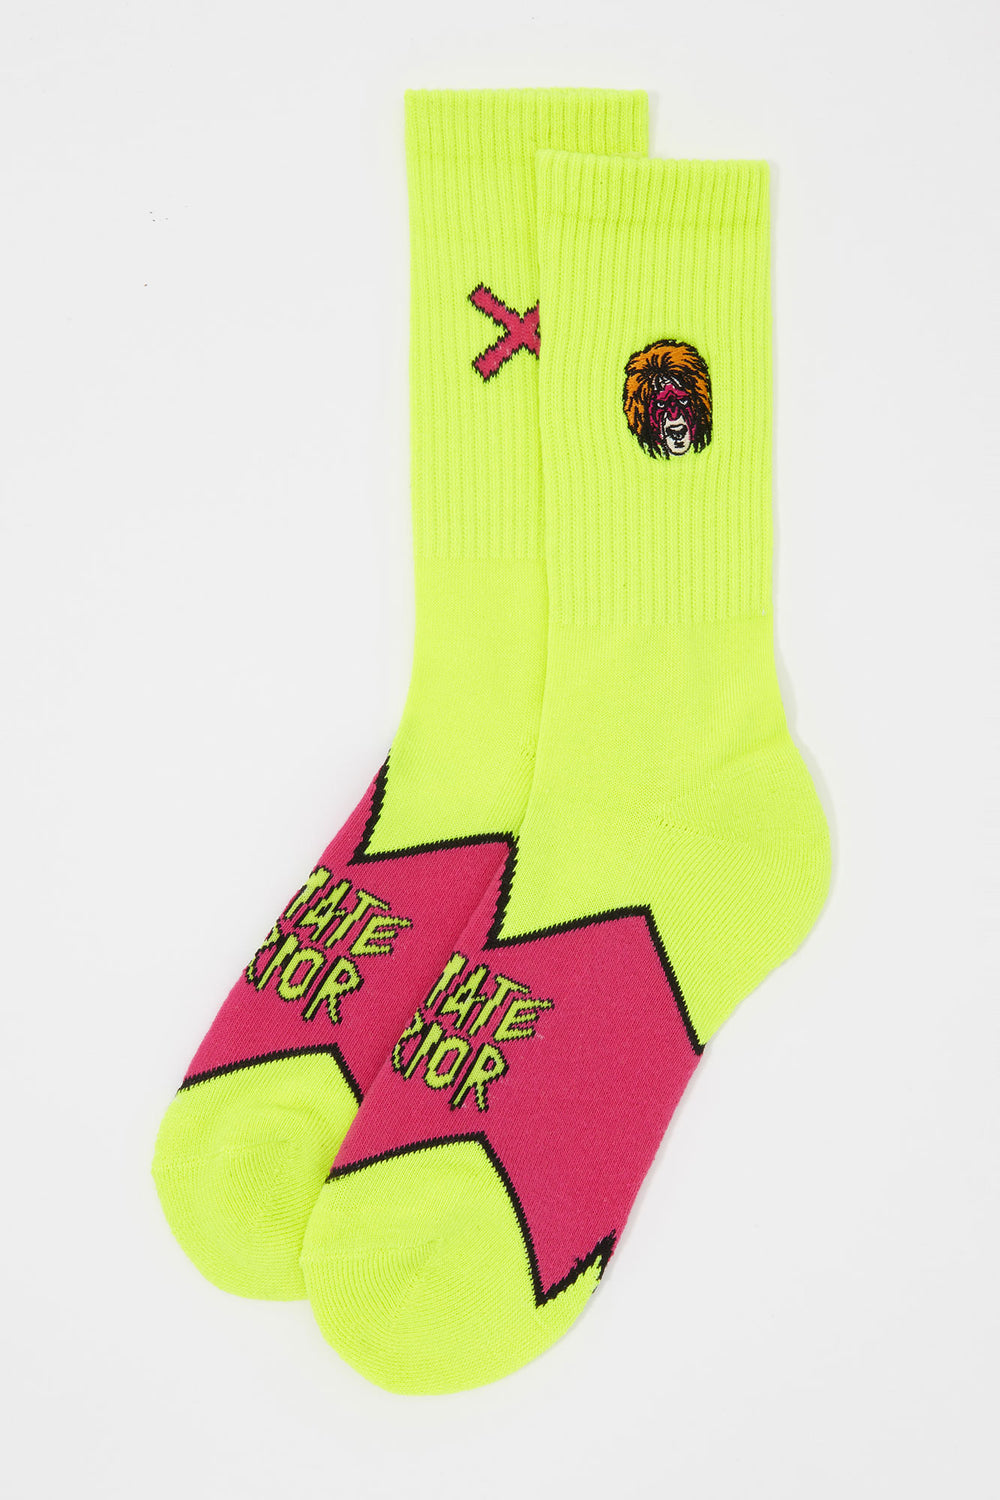 Chaussettes Ultimate Warrior Odd Sox Jaune